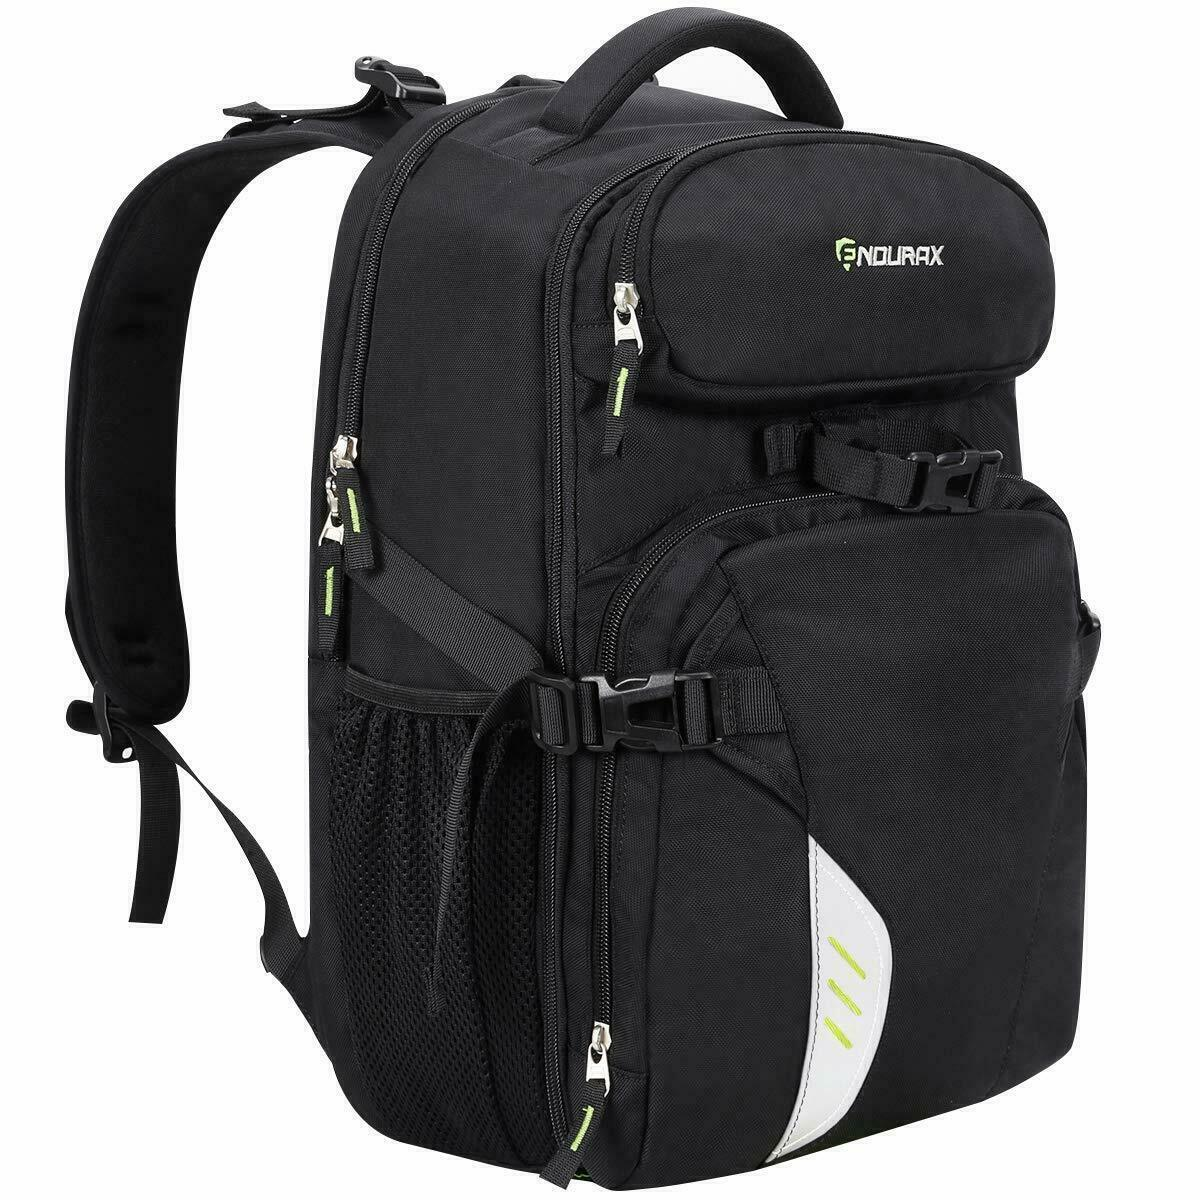 Endurax Camera Laptop Backpack for Outdoor Travel Hiking Fit